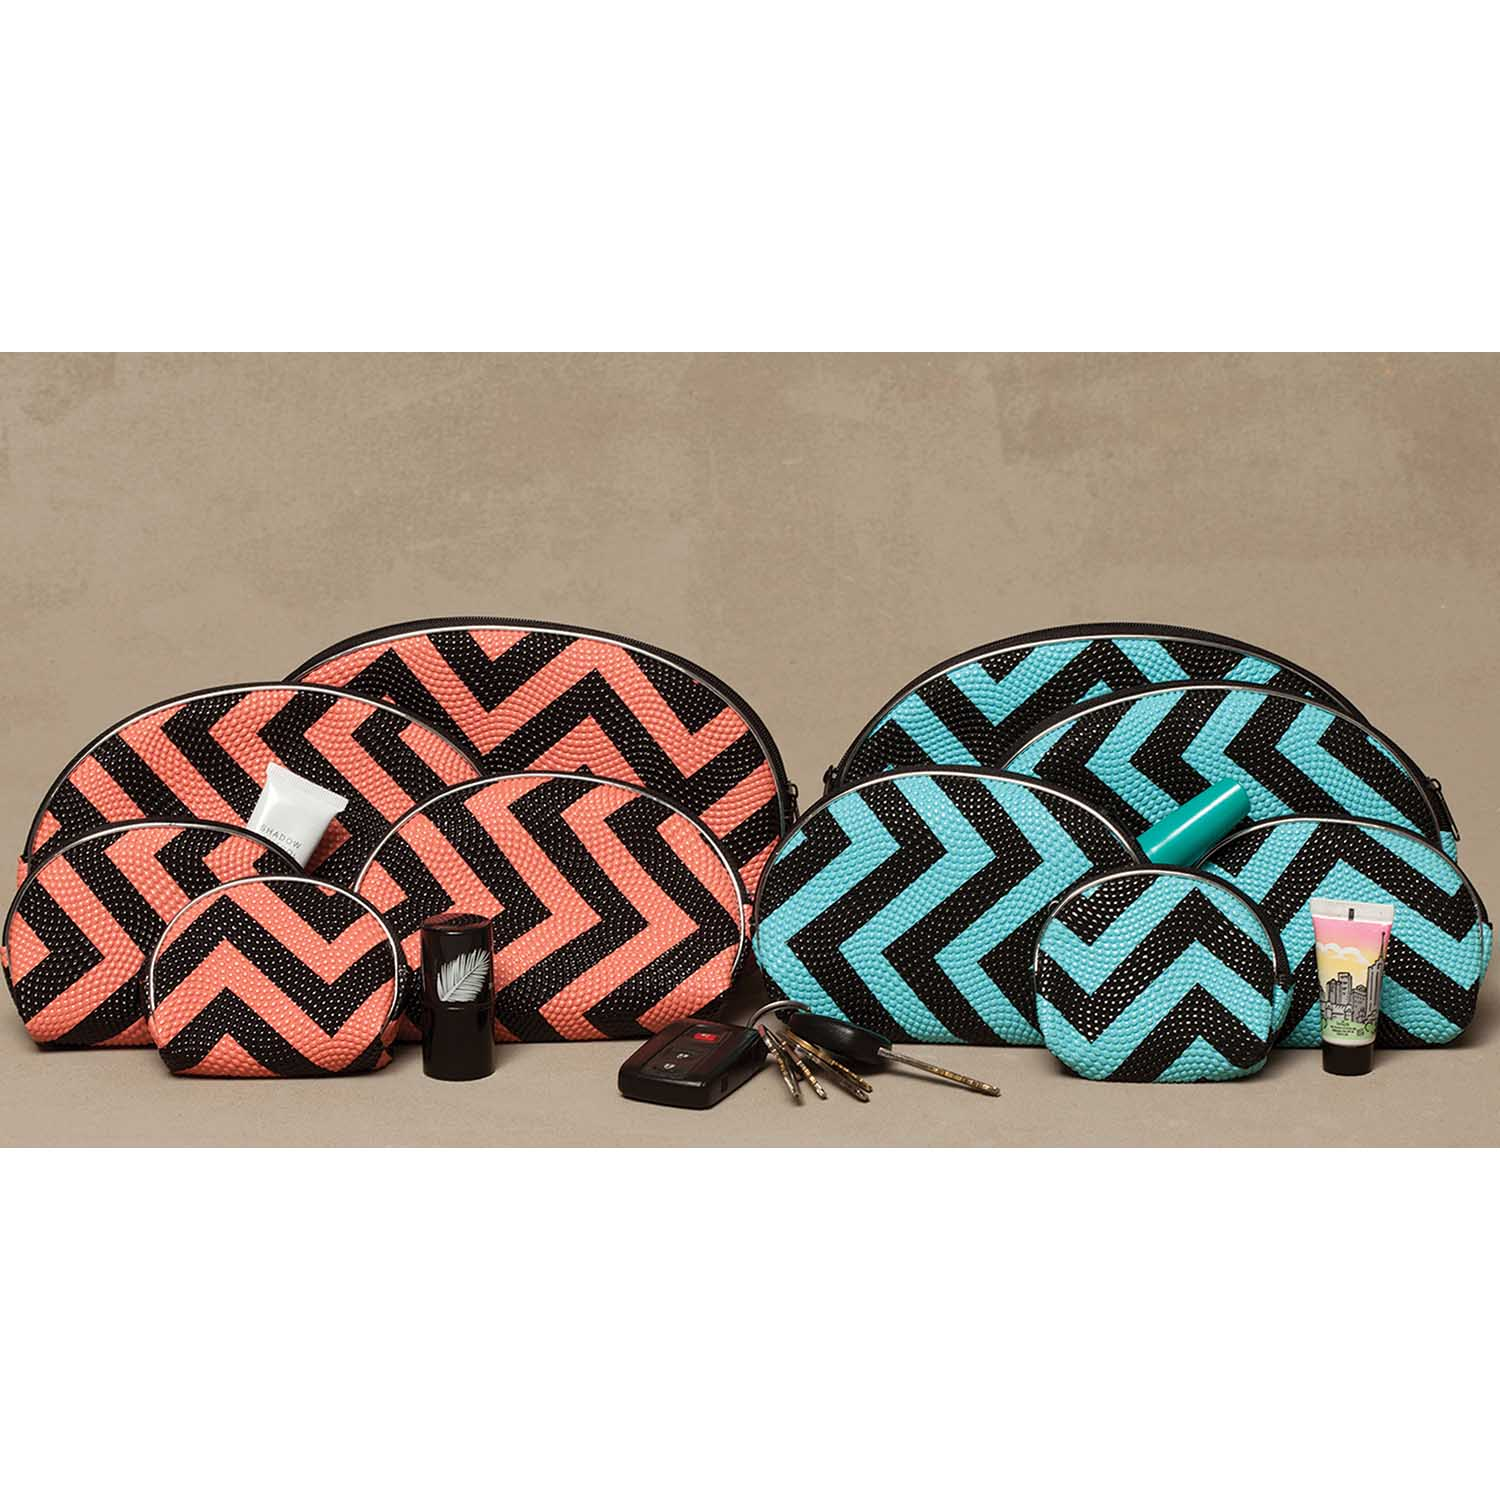 Chevron Vanity 5 Bag Set 2 Assorted Teal/Black, Melon/Black *30s